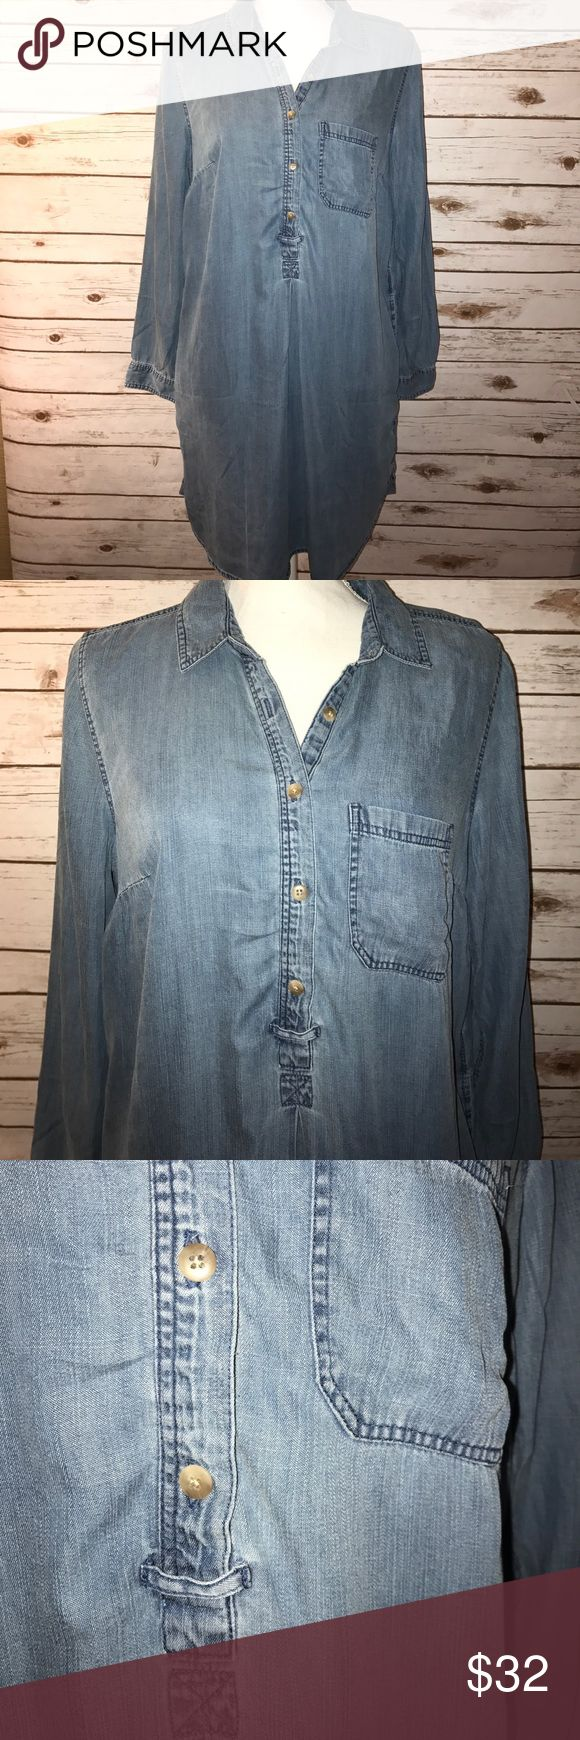 American Eagle outfitters chambray shirt dress Perfect chambray shirt dress! Slinky but a good weight. Perfect color, pockets, and sleeves that can be rolled or left long. Looks awesome with chucks, wedges or leggings and boots. A year round piece! Size large NWT. Measurements laying flat: pit to pit 22.5 inches, waist 22 inches, hip 23.5 inches, length 37 inches. Also available in size medium in my closet. American Eagle Outfitters Dresses Mini